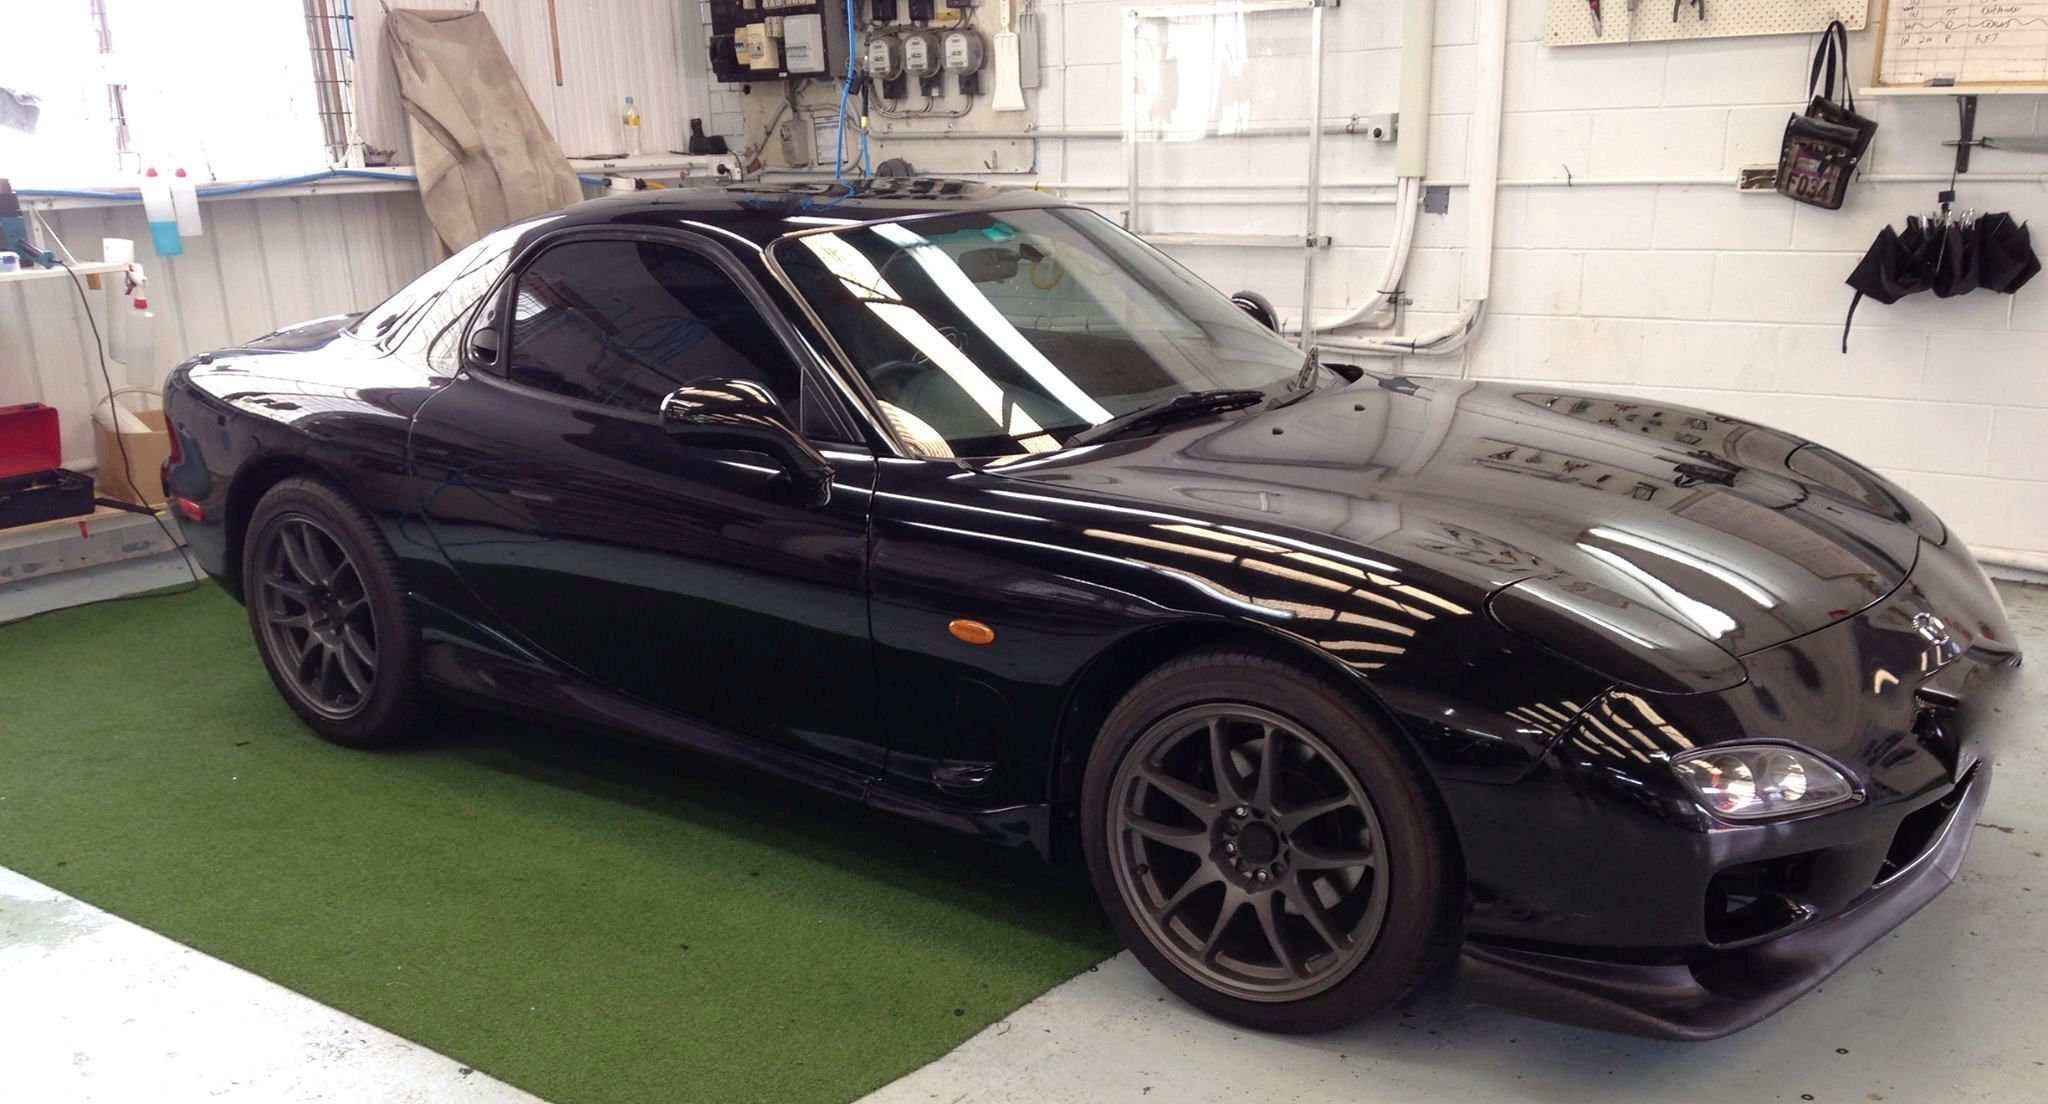 Black Window Tint Gives This Sport Car An Extra Dark Mysterious